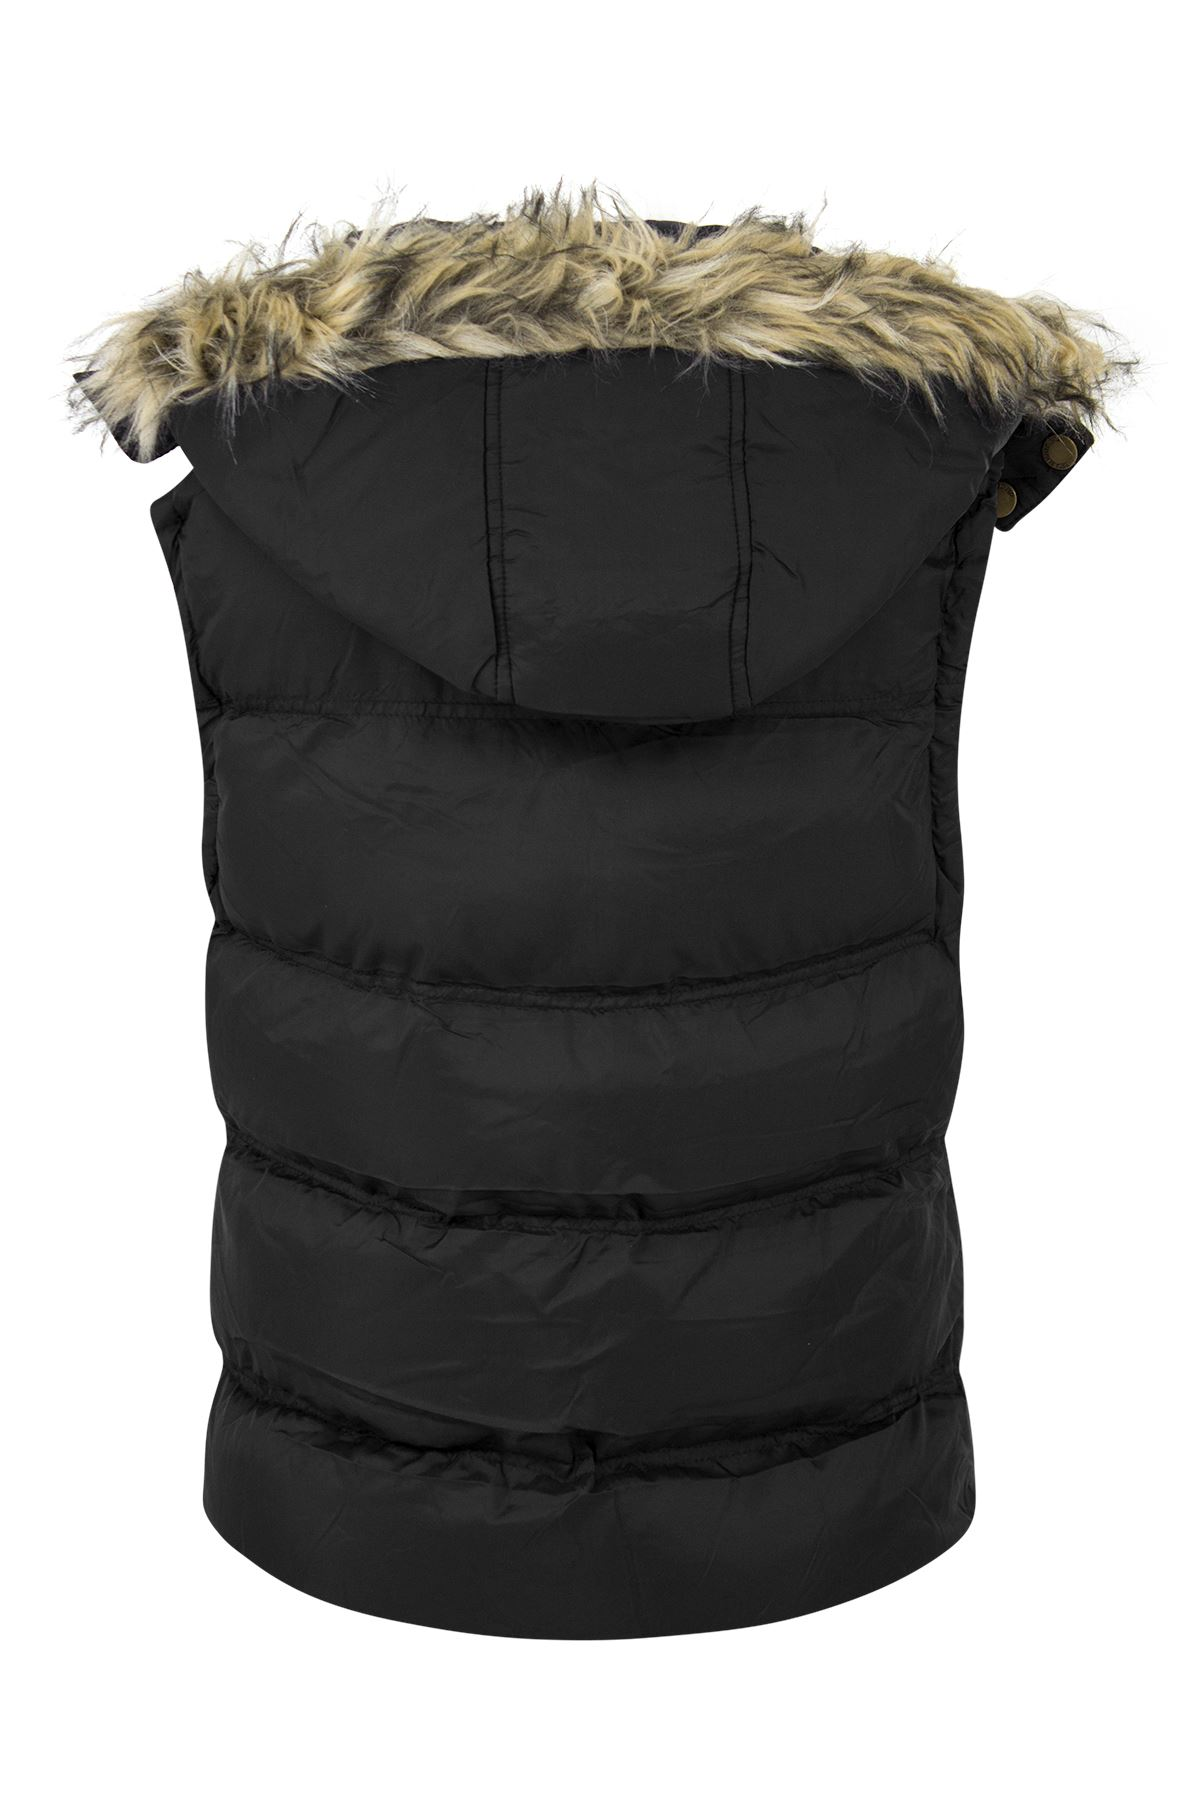 New-Womens-Padded-Sleeveless-Gilet-Faux-Fur-Hooded-Puffer-Body-Warmer-Jacket thumbnail 4